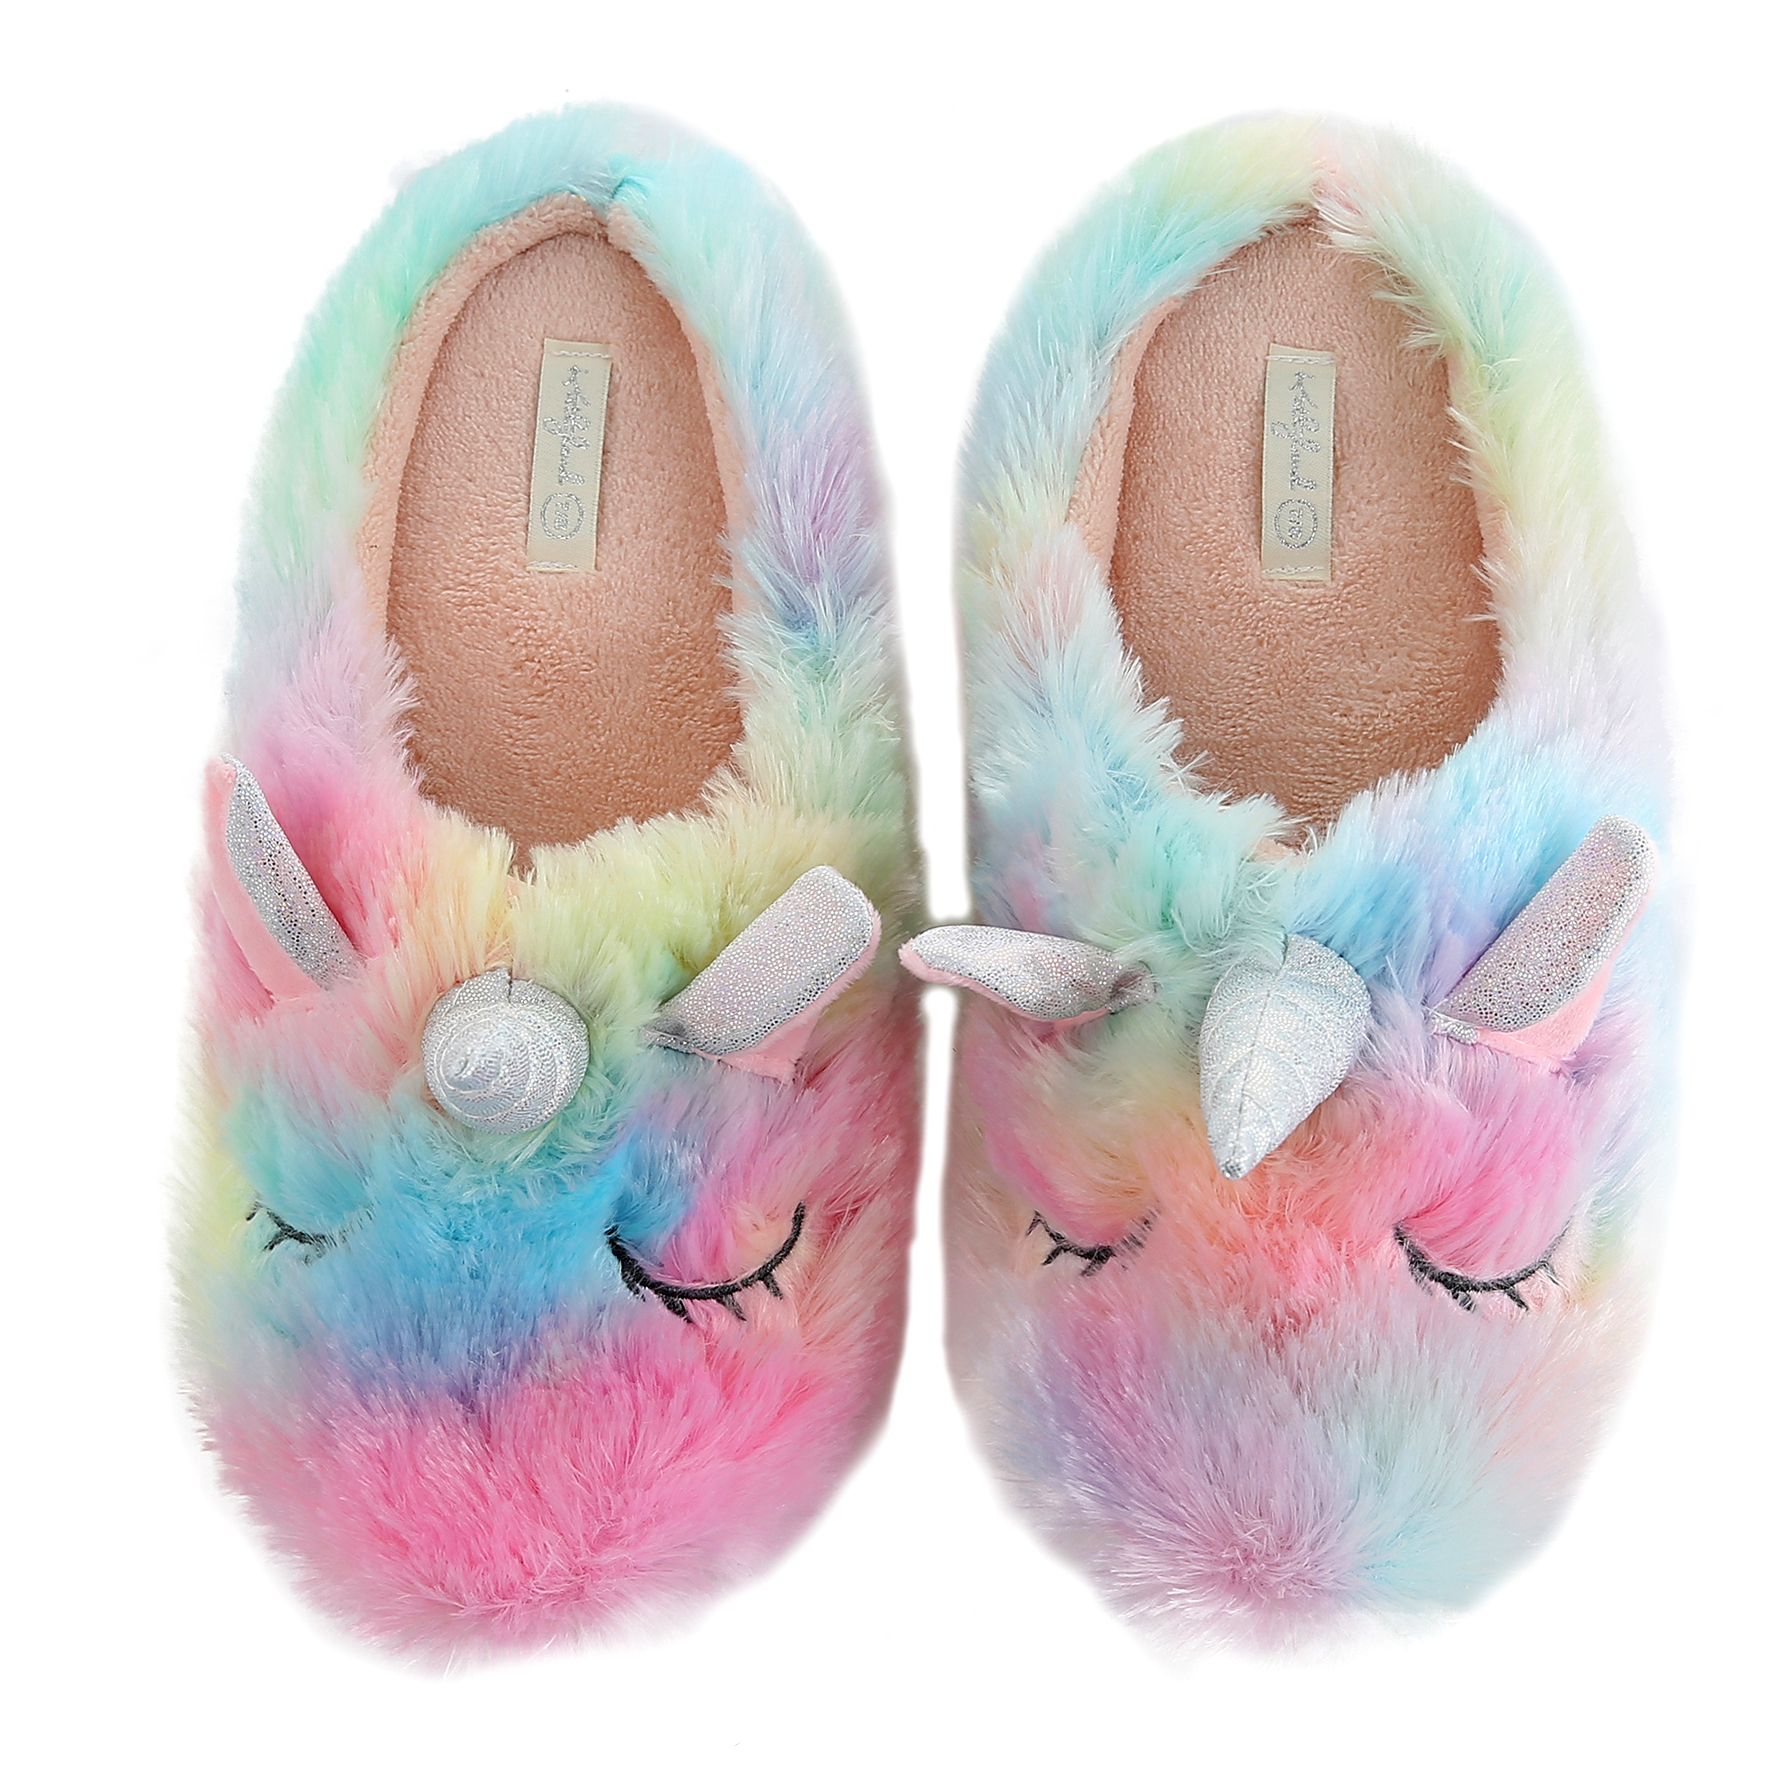 Millffy Unicorn Shoes Cortoon Rainbow Comfy Home Indoor Warm Women Animal Slippers